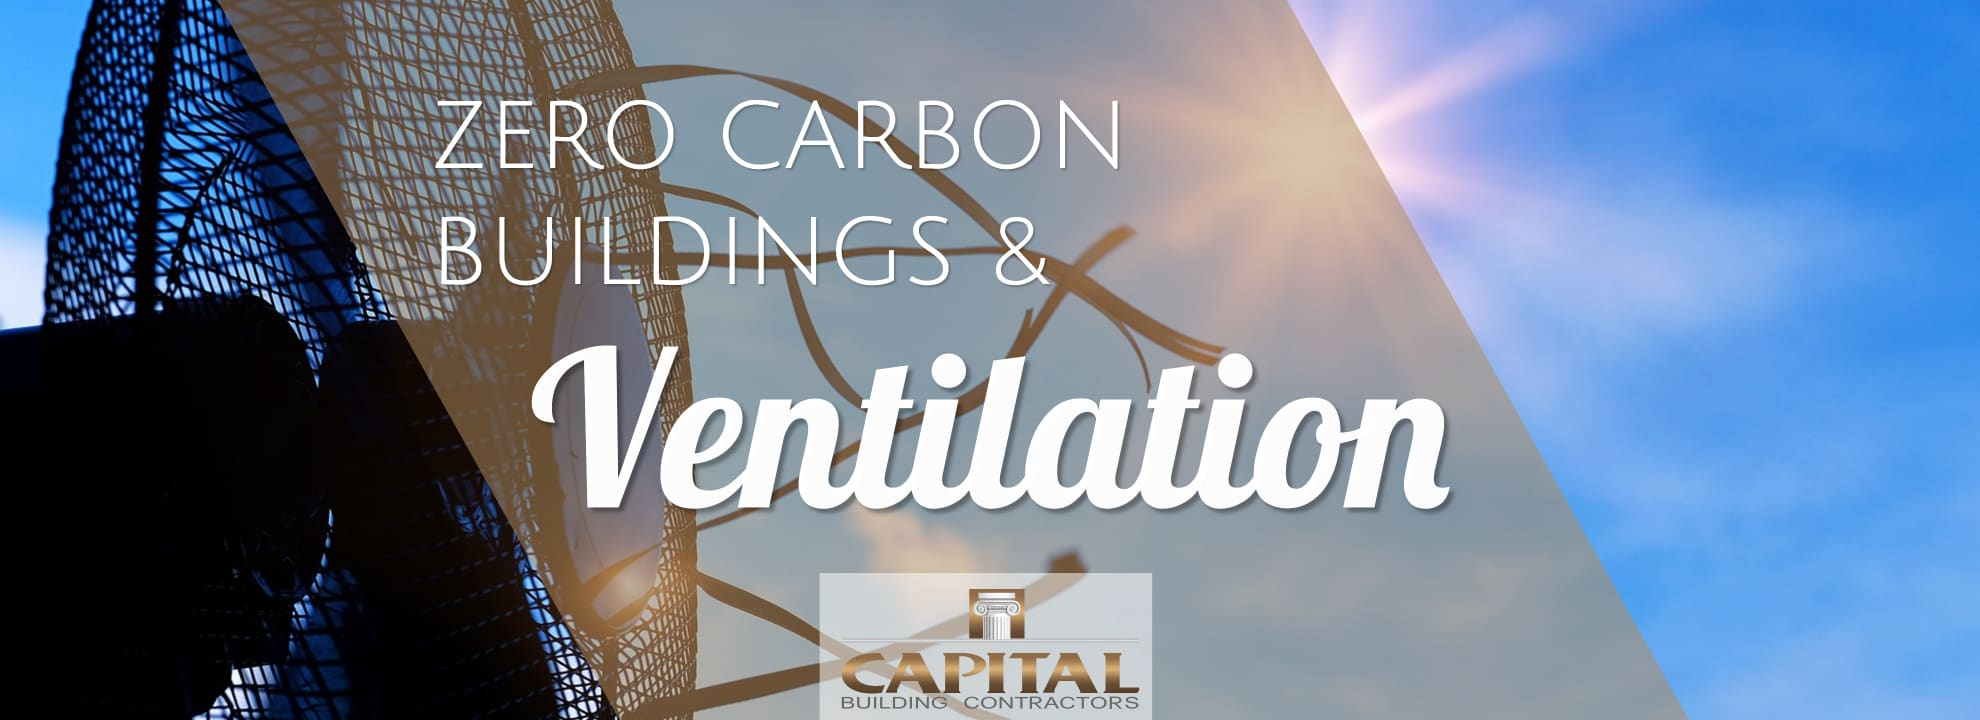 Zero Carbon Buildings Ventilation Melbourne Builder